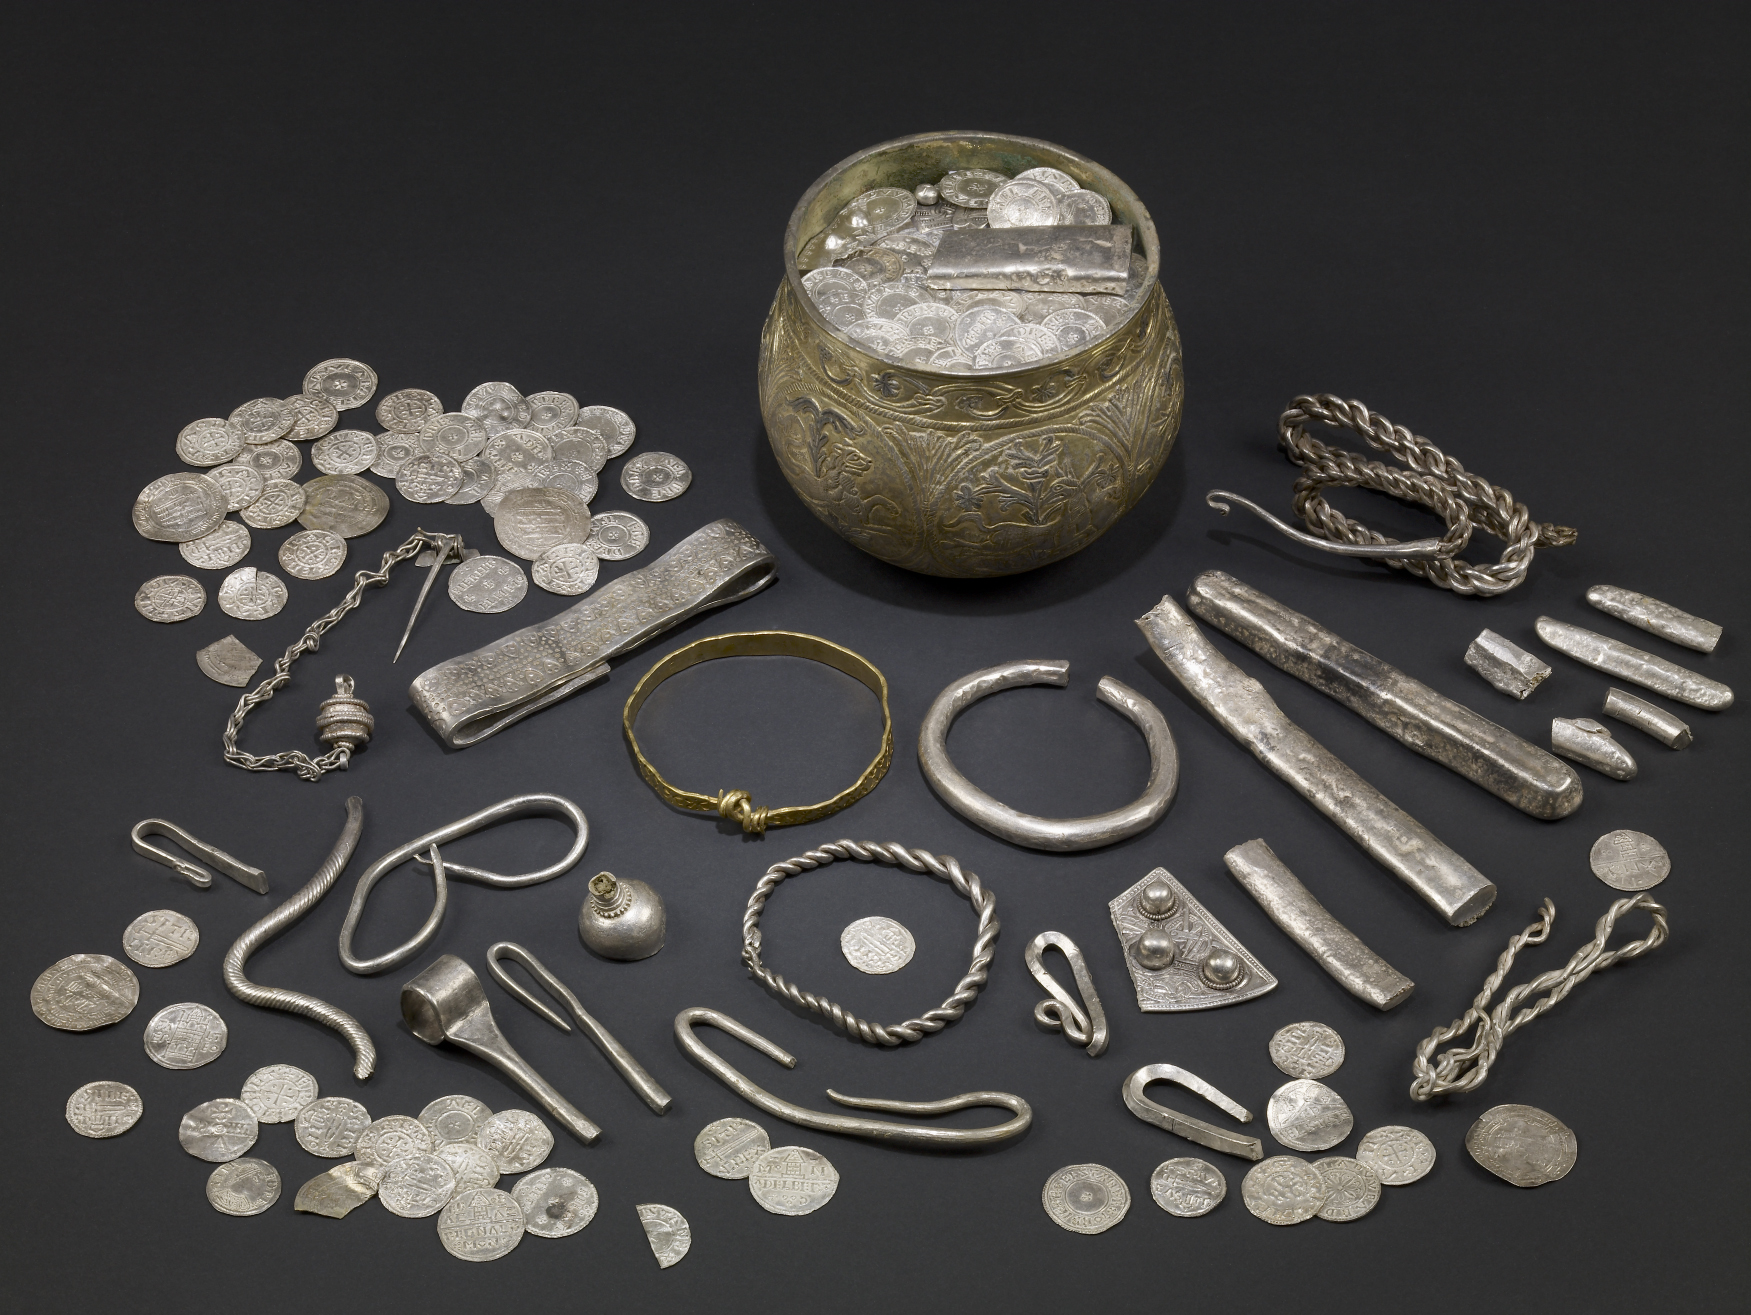 A selection of objects from the Vale of York Hoard, including jewellery, coins and hack silver.